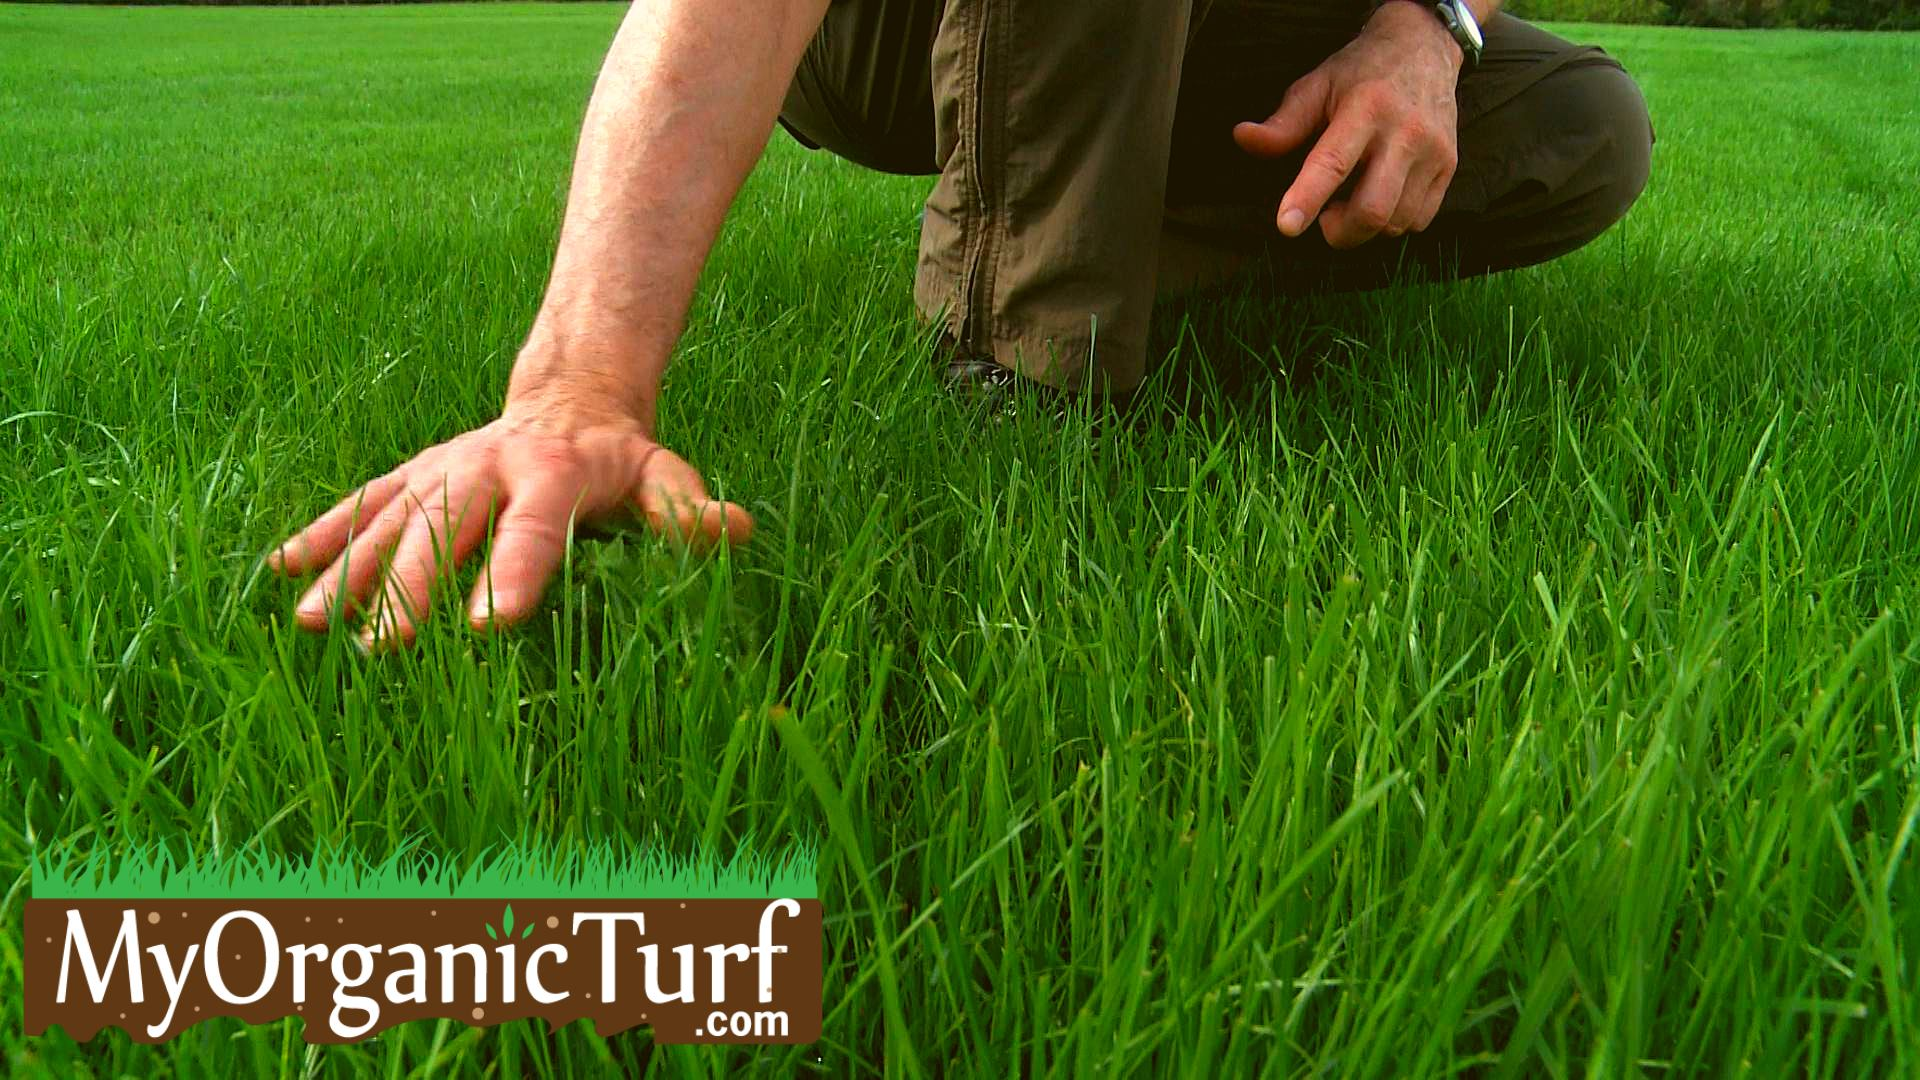 Lawn grass assessment by My Organic Turf